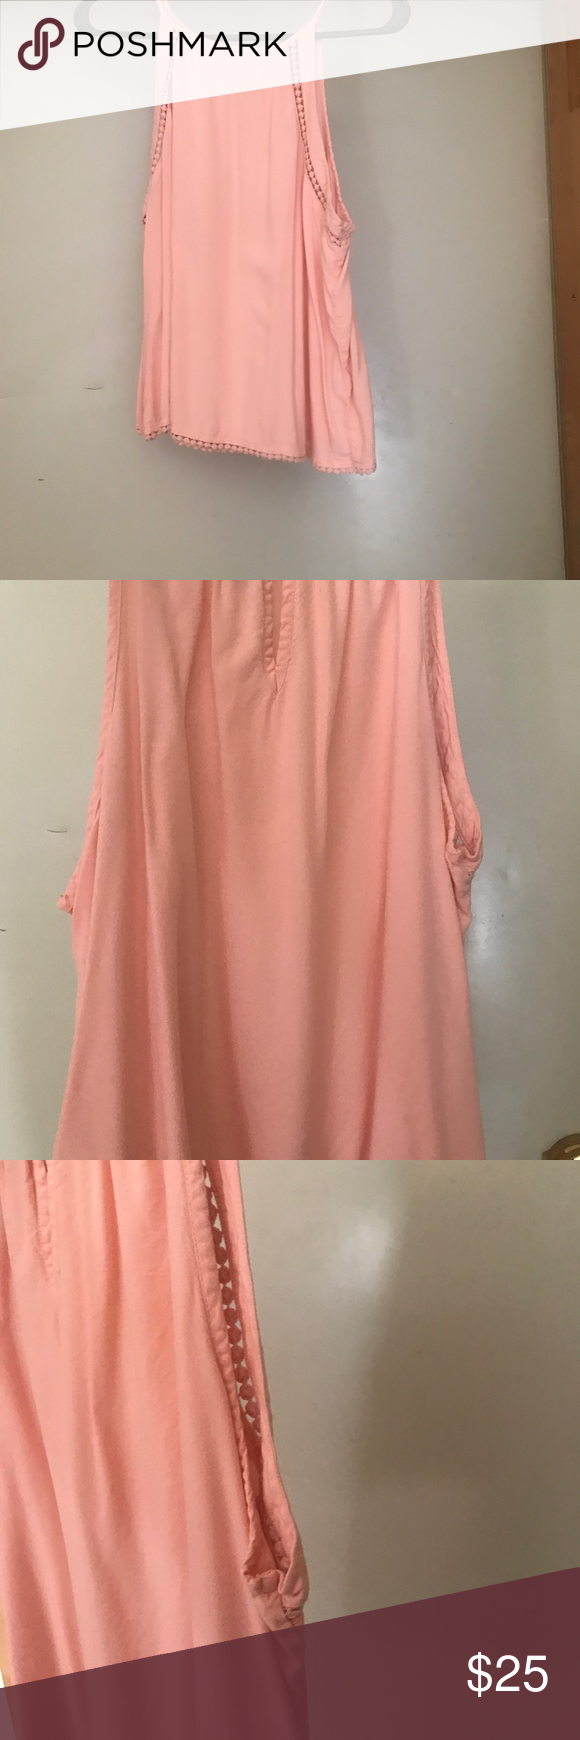 Cute cute pink top pink tops customer support and delivery